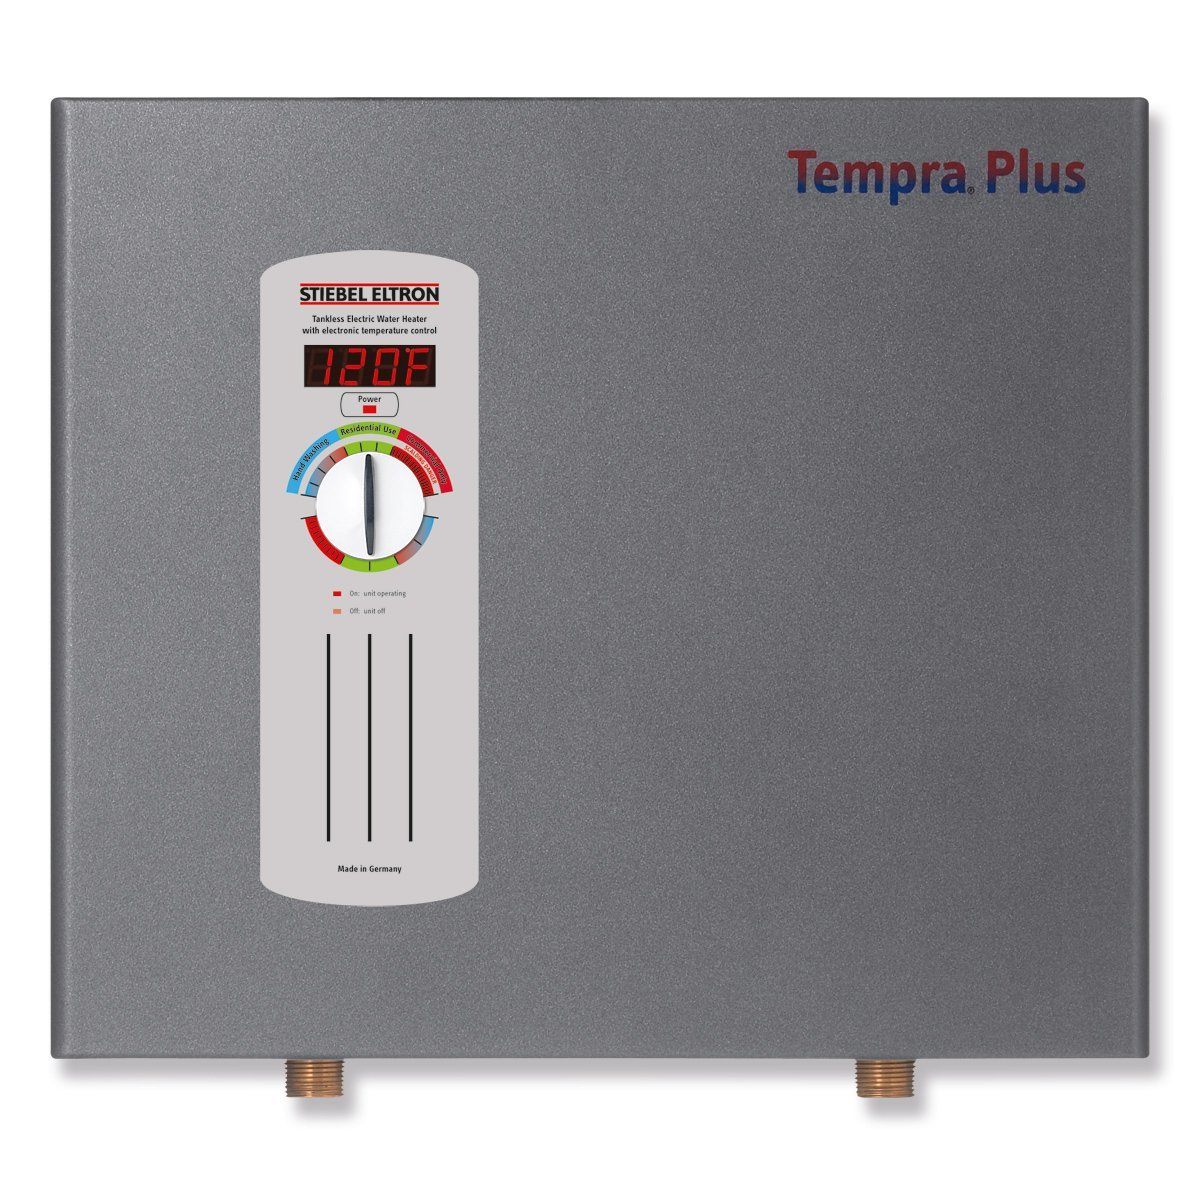 Stiebel Eltron Tempra 24 Plus Best Electric Tankless Whole House Water Heater